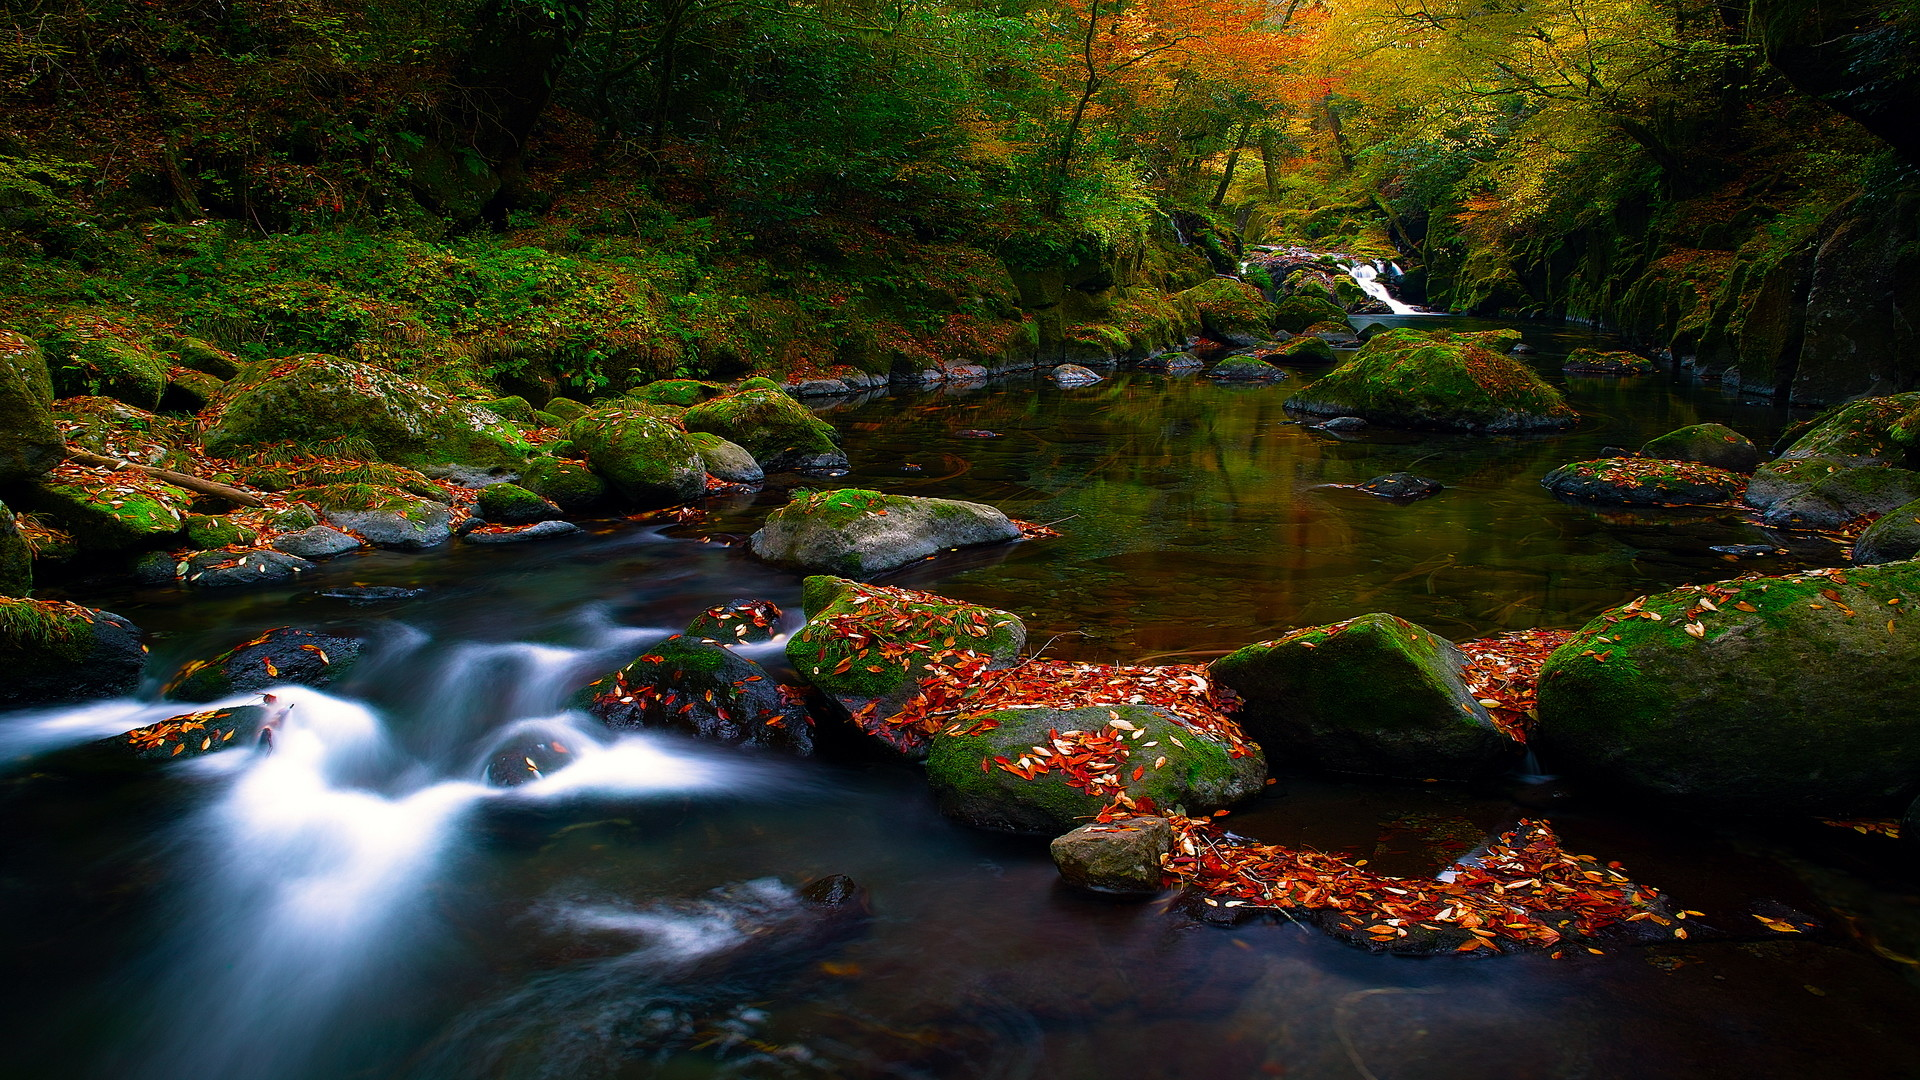 Free Nature Screensavers And Wallpapers For Computer: Autumn by .